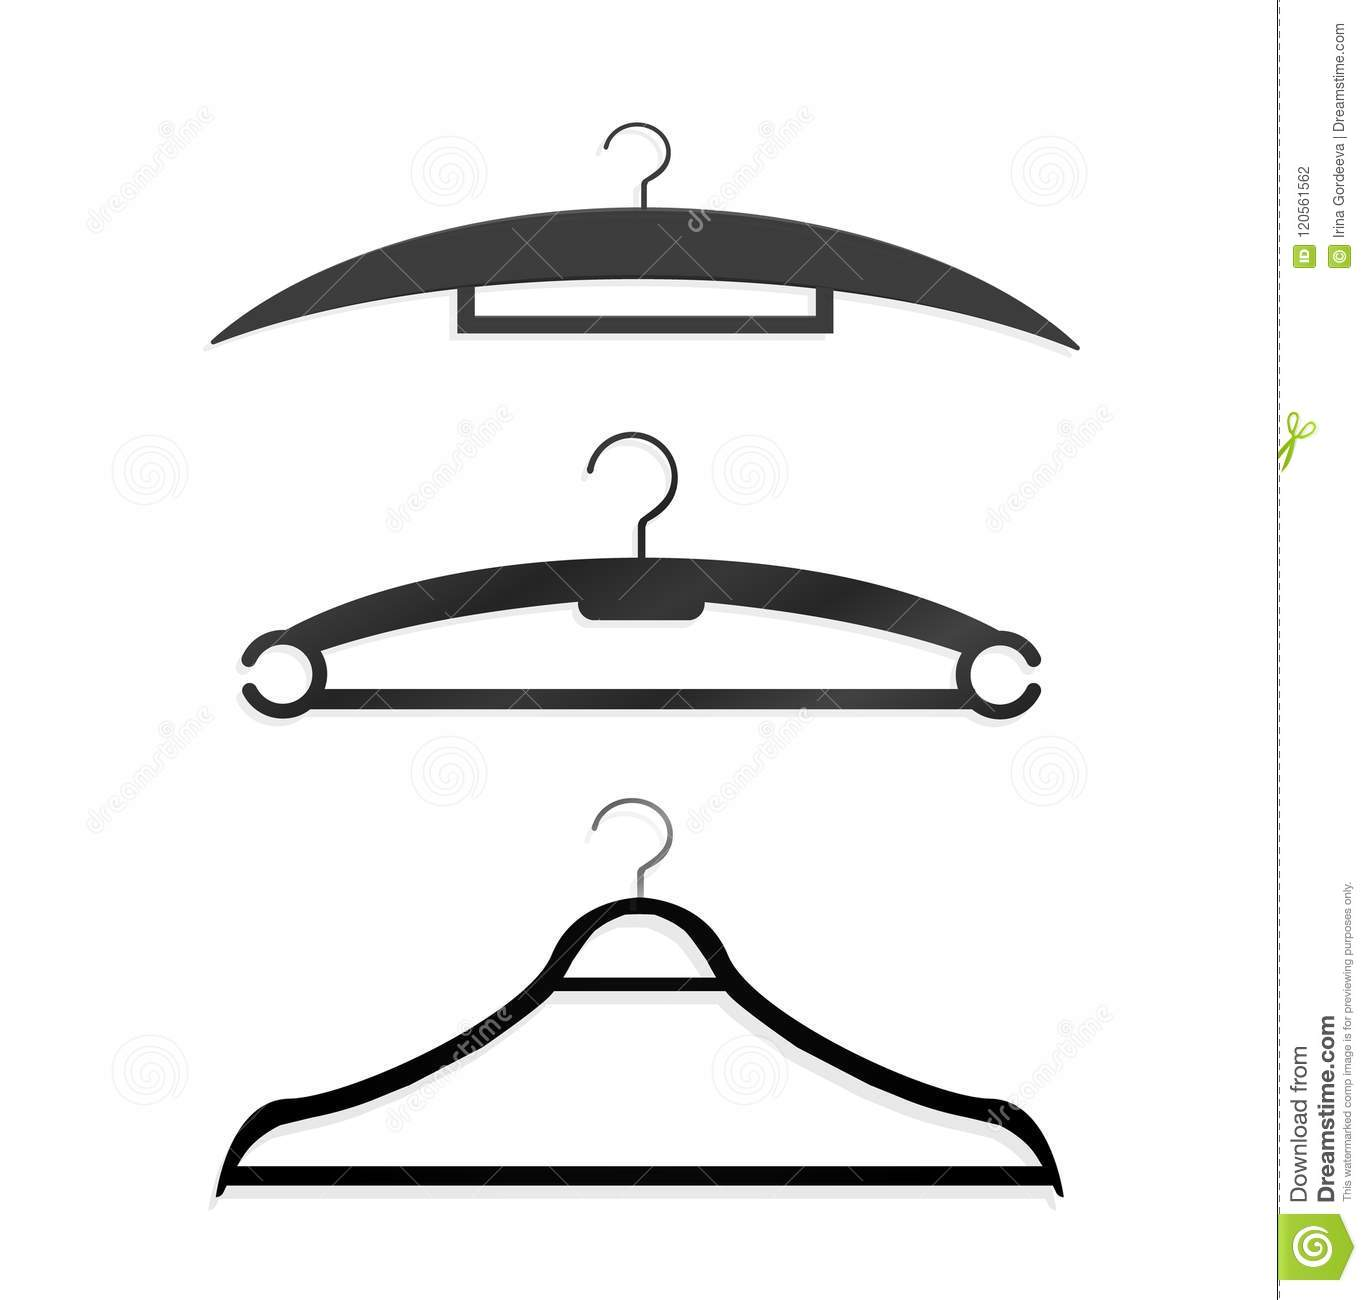 for coats sweaters dresses skirts pants design templatelayout for graphics advertising